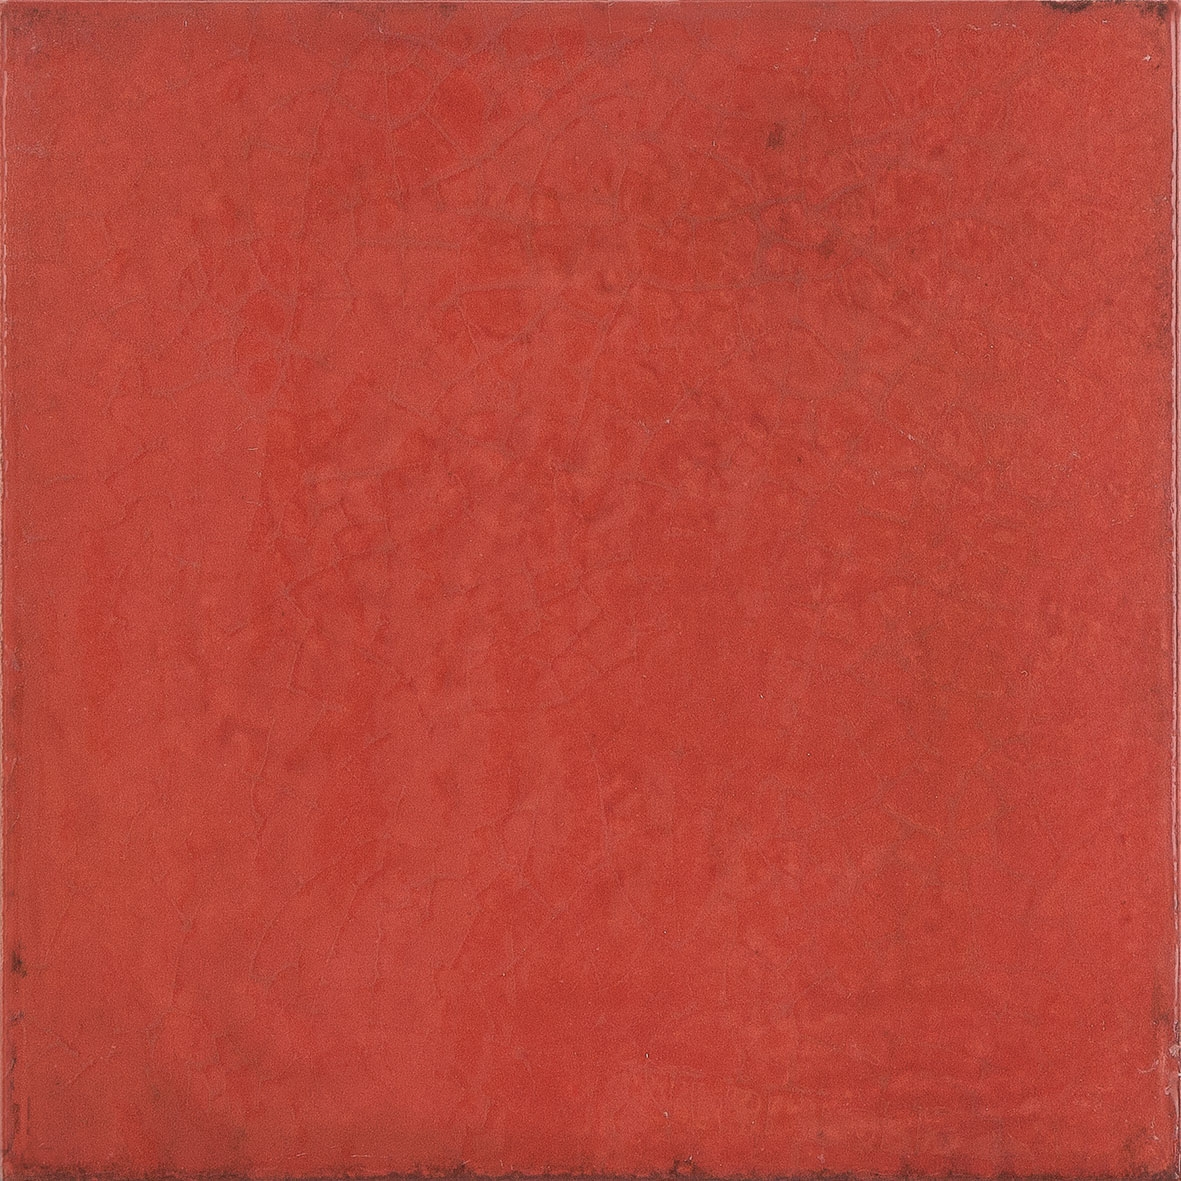 ROSSO 20x20